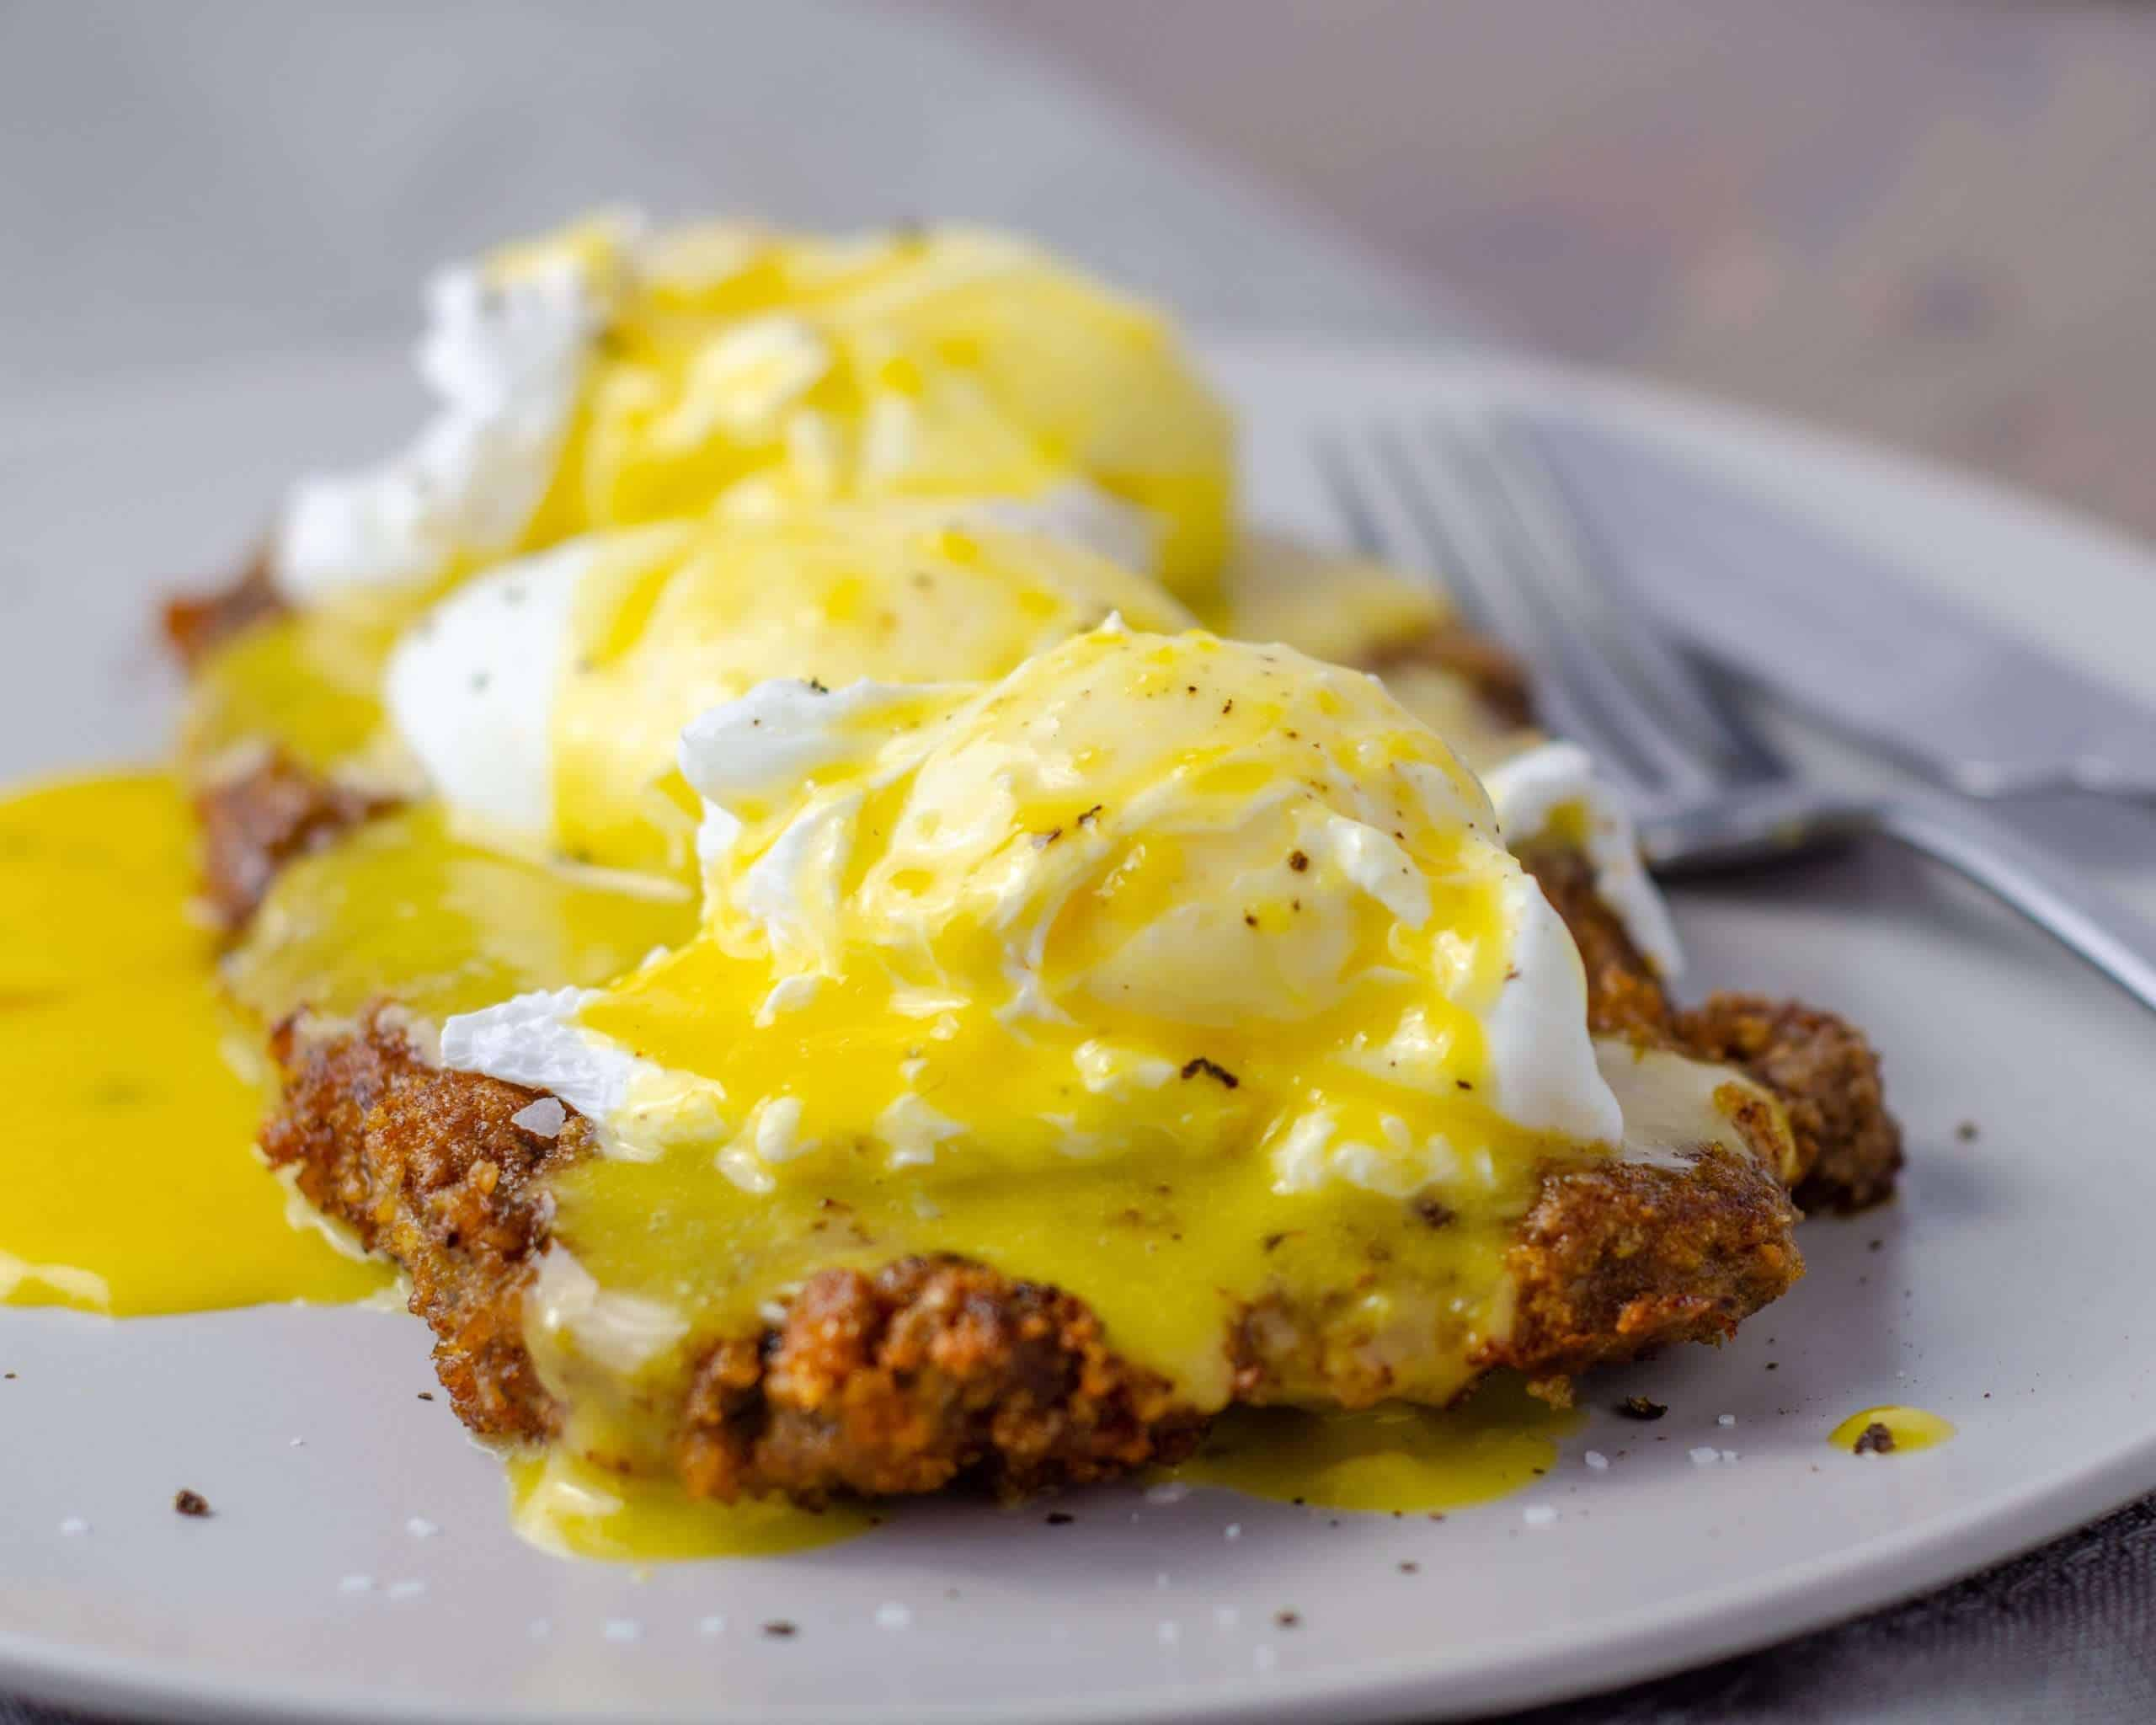 Country Fried Steak with Poached Eggs and Hollandaise